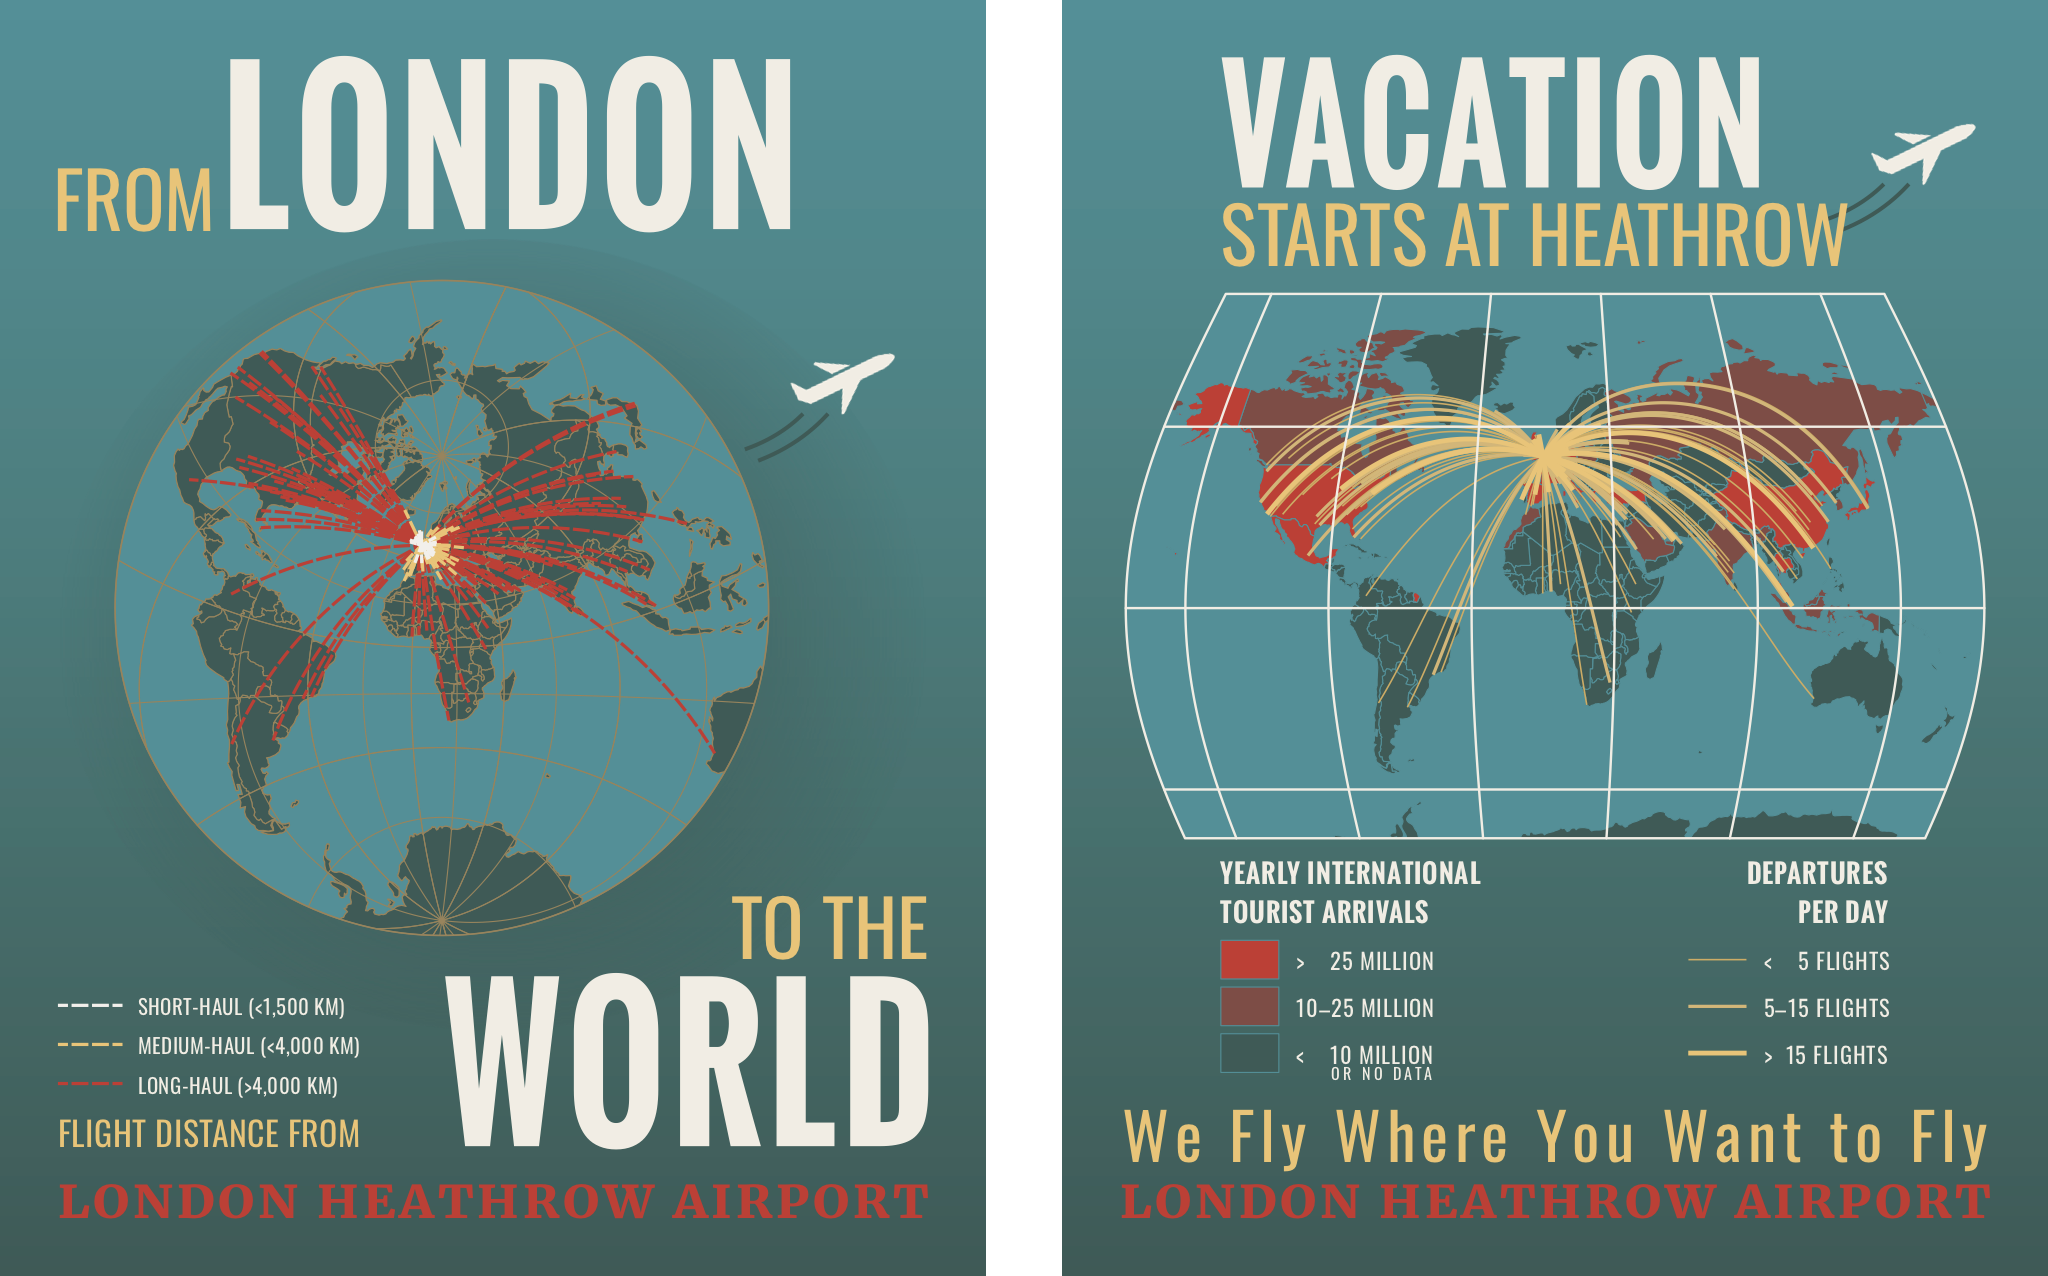 Two advertisements, each with a map showing flights departing London Heathrow Airport. The first depicts the distances of the flights, while the second highlights major tourist destinations.